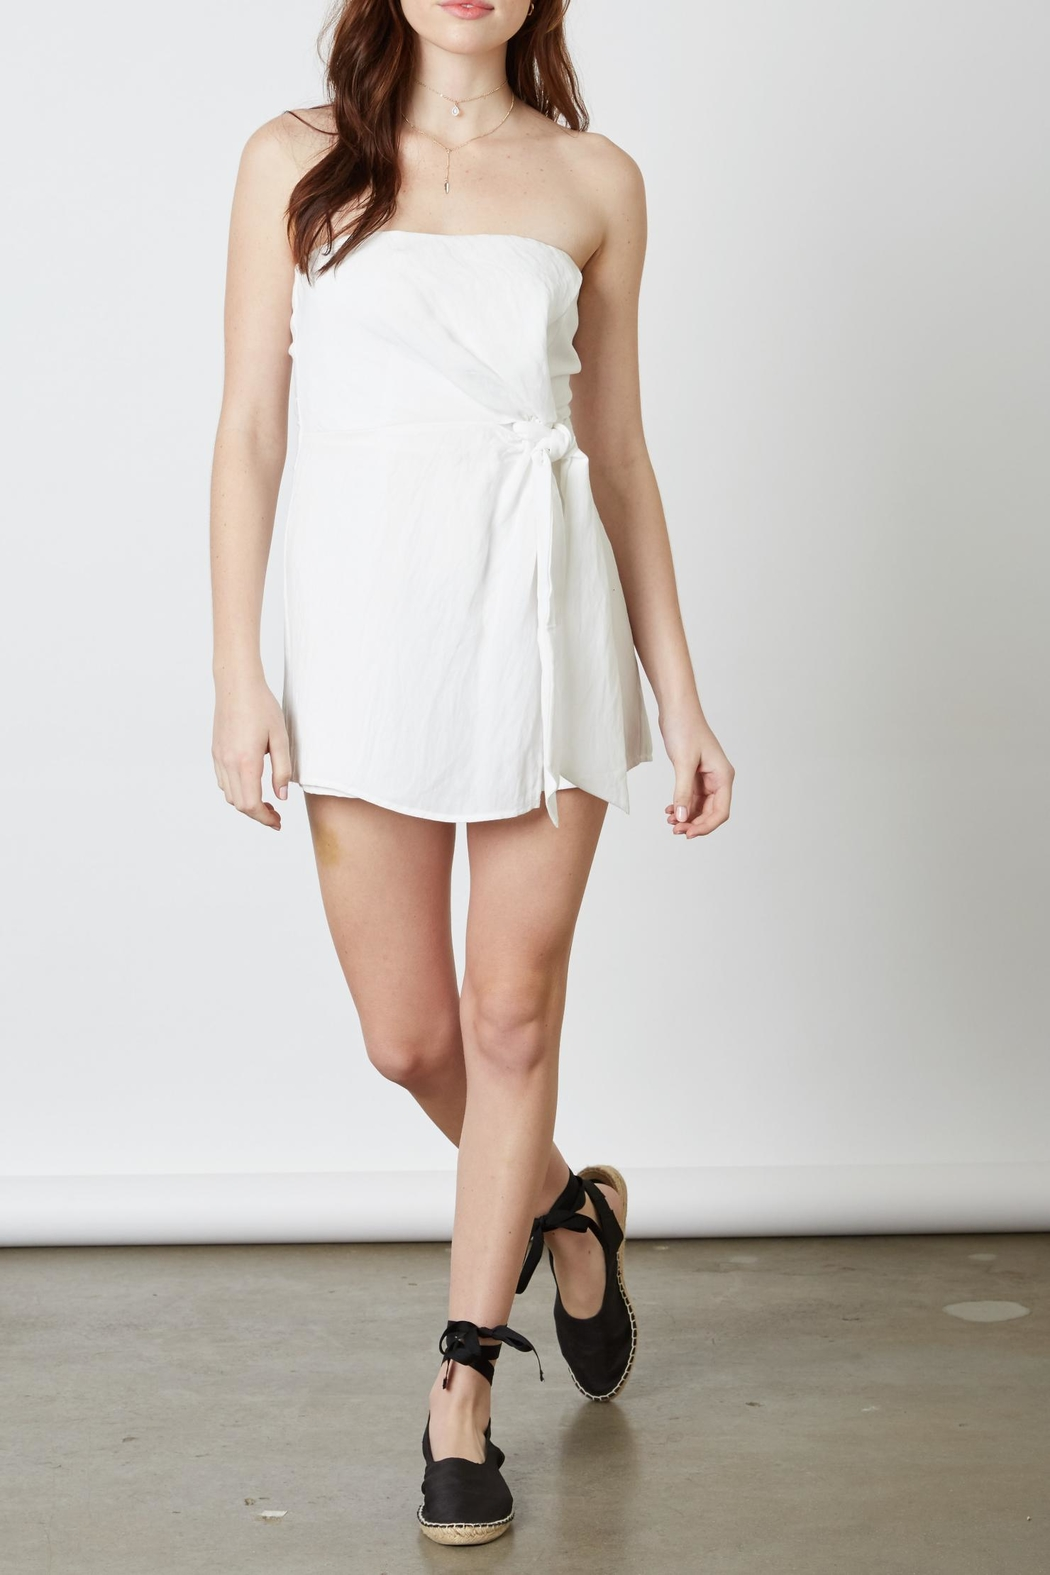 Cotton Candy White Tie Romper - Front Cropped Image